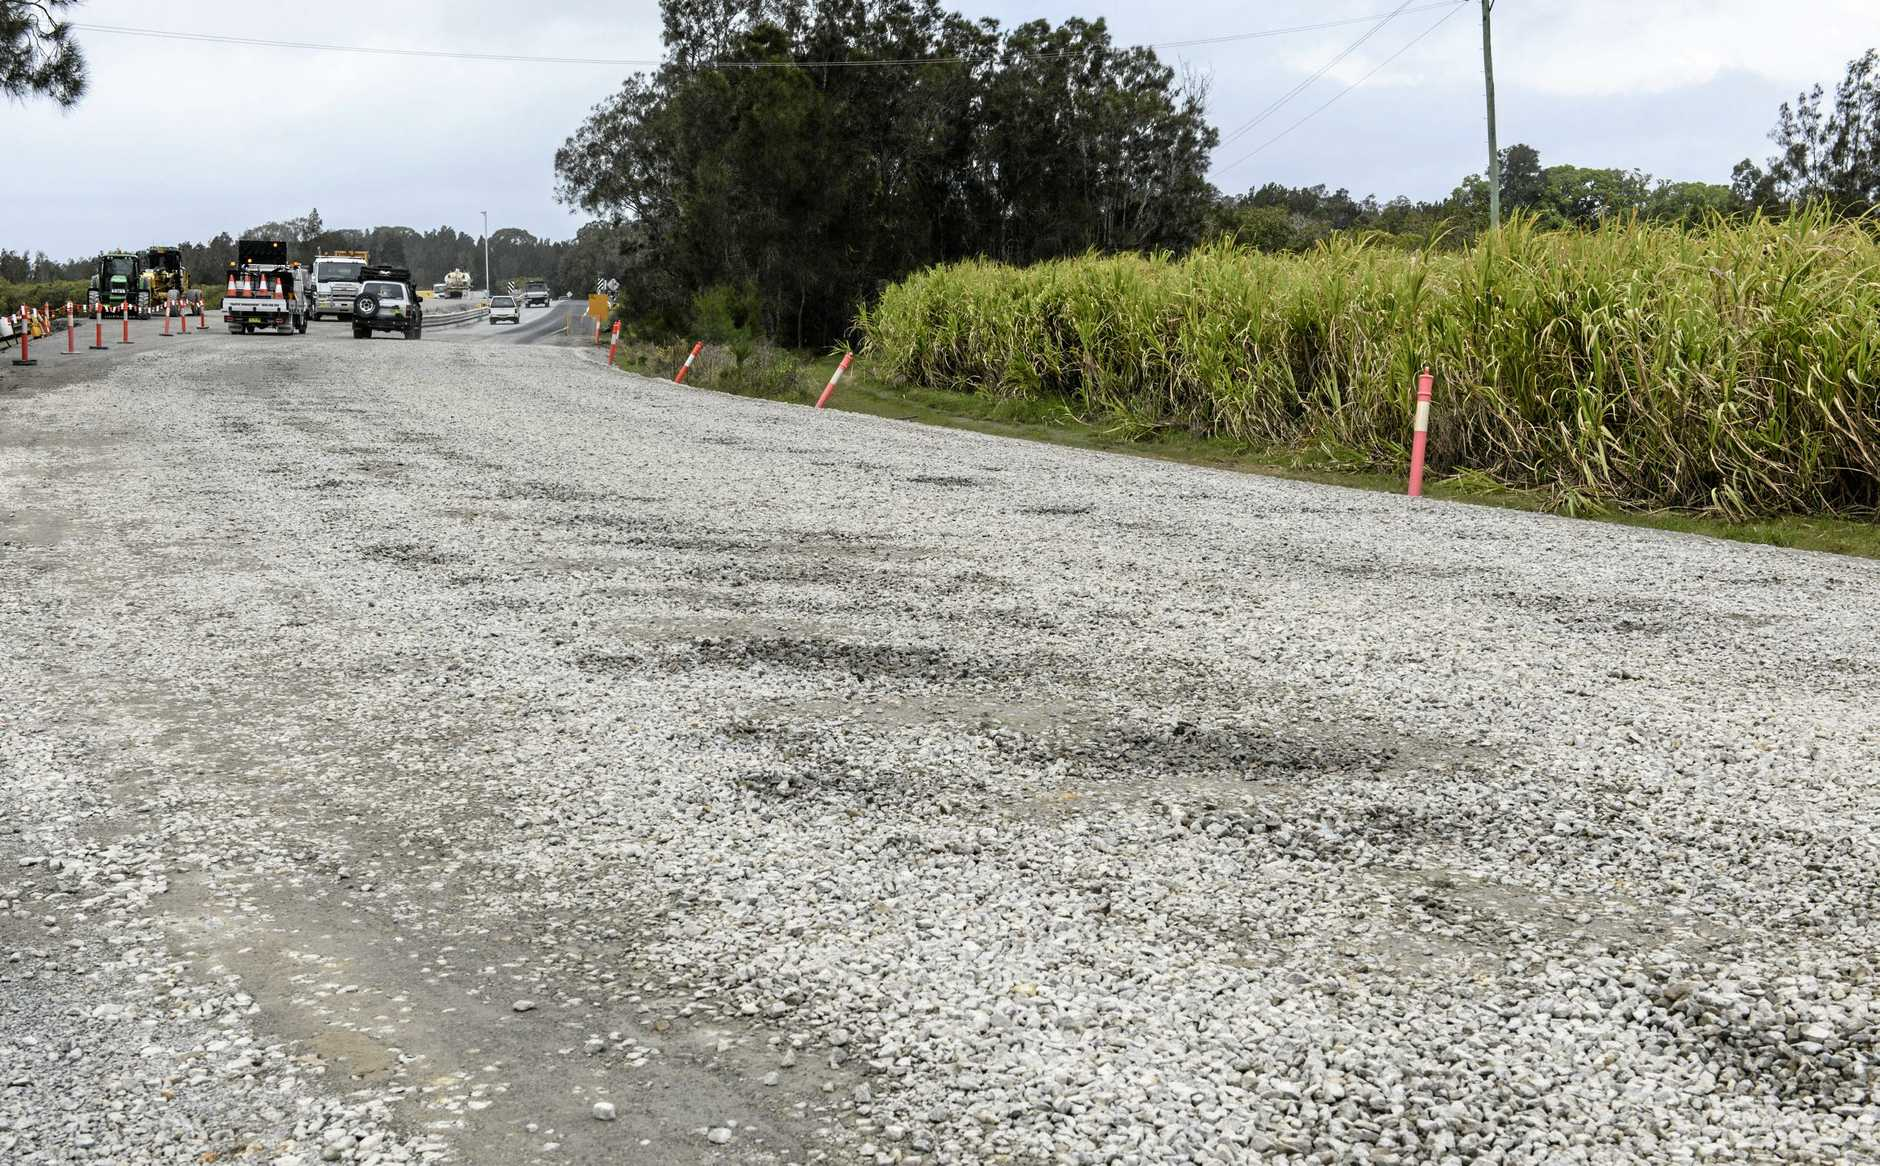 Damage to the road surface caused by heavy rains near Romiaka Channel bridge works.